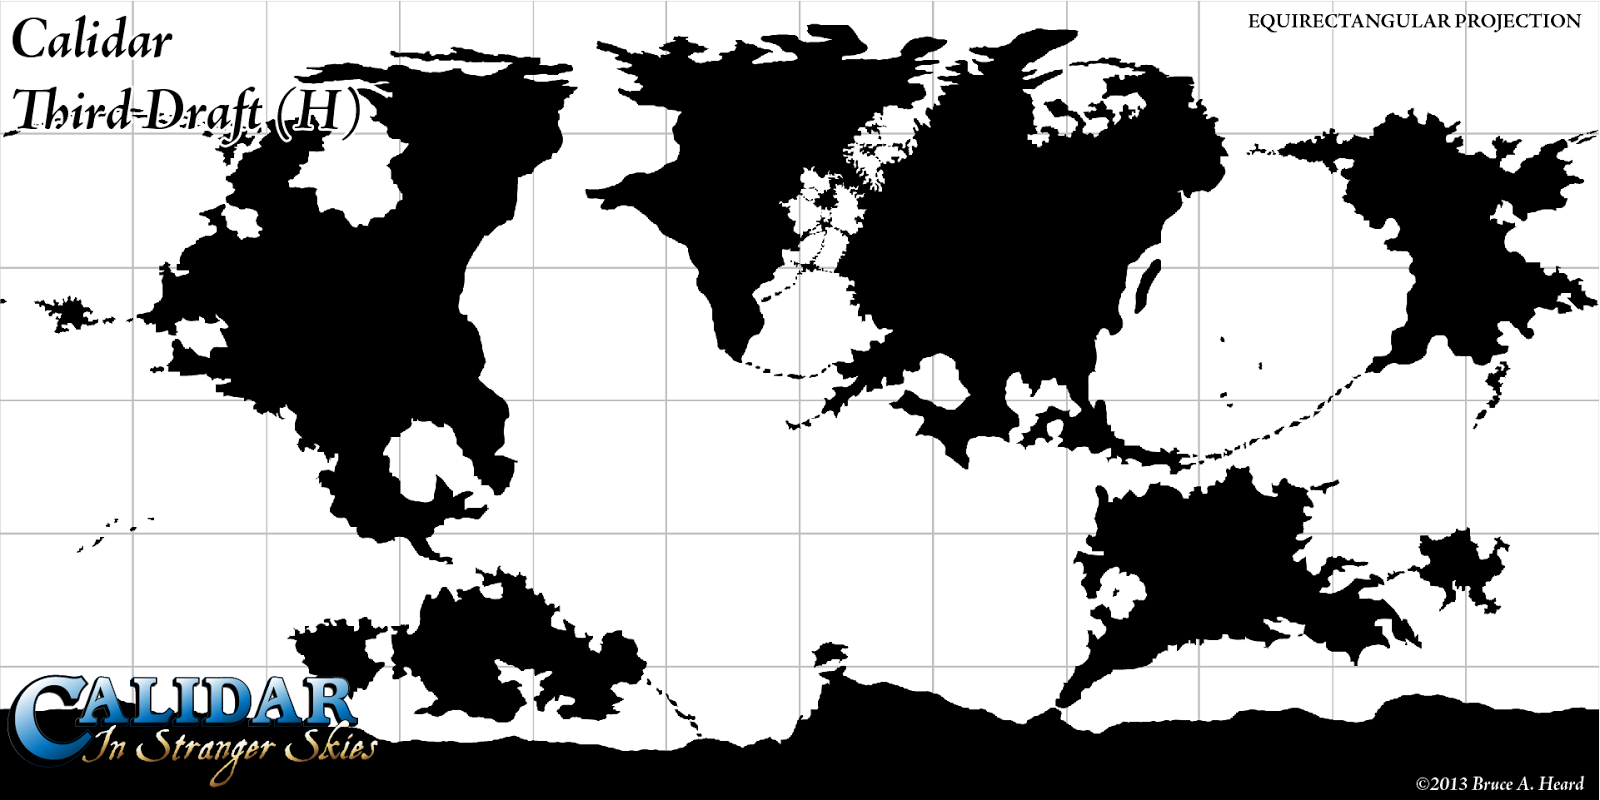 The cartography of thorfinn tait december 2013 the world of calidar third draft world map equirectangular projection gumiabroncs Images